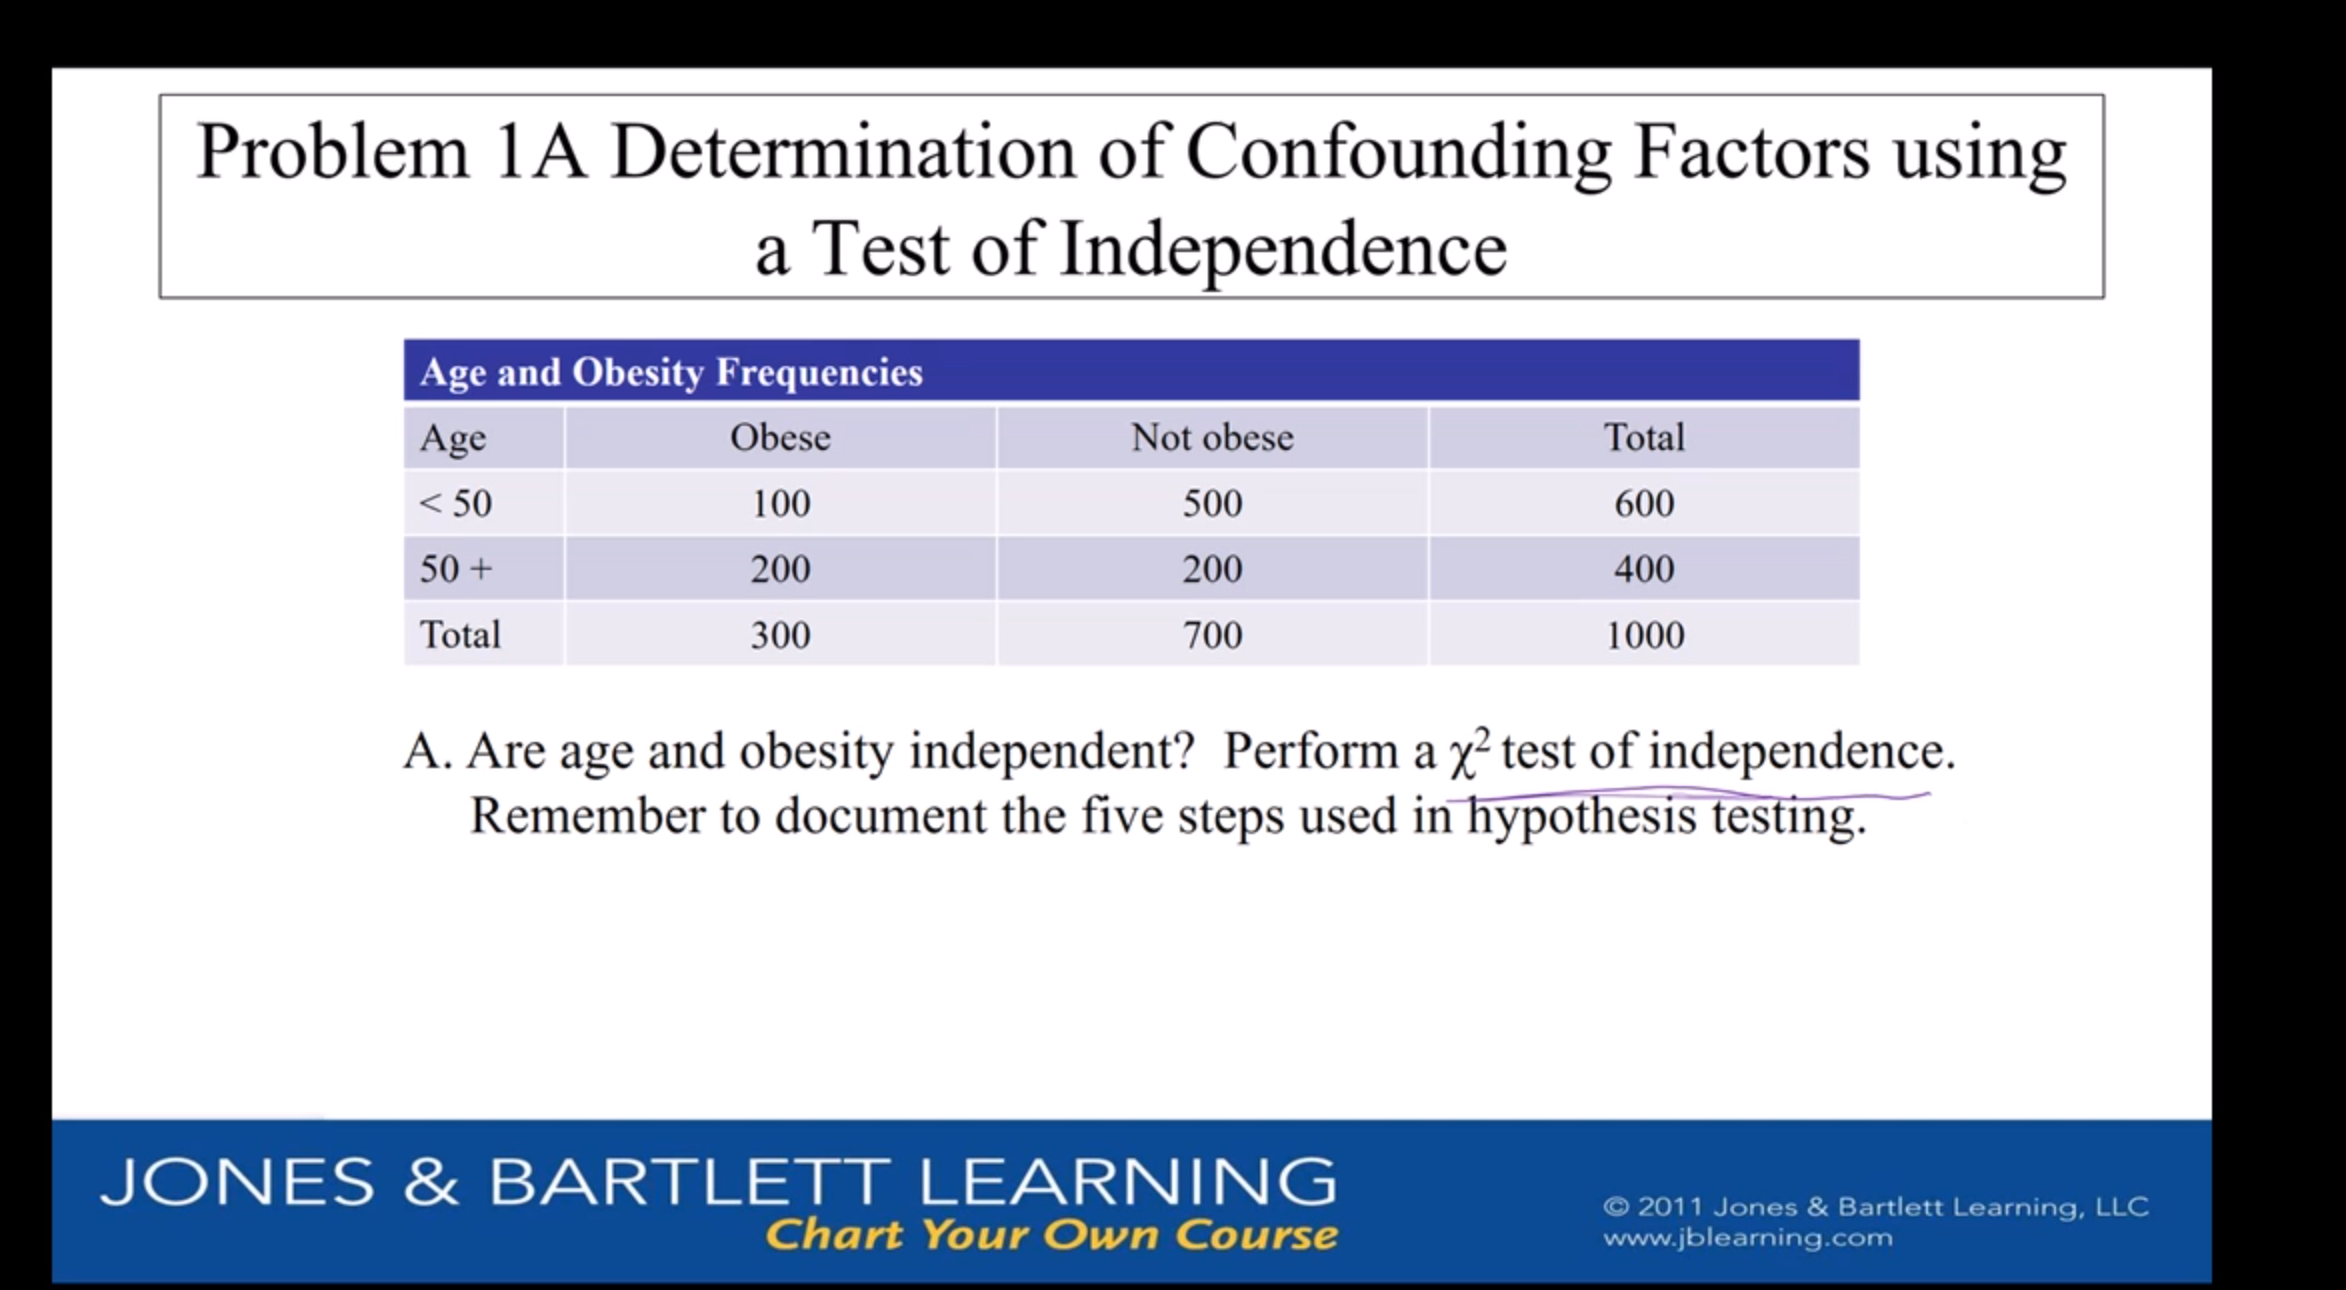 Problem 1A Determination of Confounding Factors using a Test of Independence Age and Obesity Frequencies Obese Not obese Total Age 500 100 600 <50 50+ 200 200 400 Total 1000 300 700 A. Are age and obesity independent? Perform a y2 test of independence. Remember to document the five steps used in hypothesis testing. JONES& BARTLETT LEARNING Chart Your Own Course O2011 Jones & Bartlett Learning, LLC www.jblearning.com